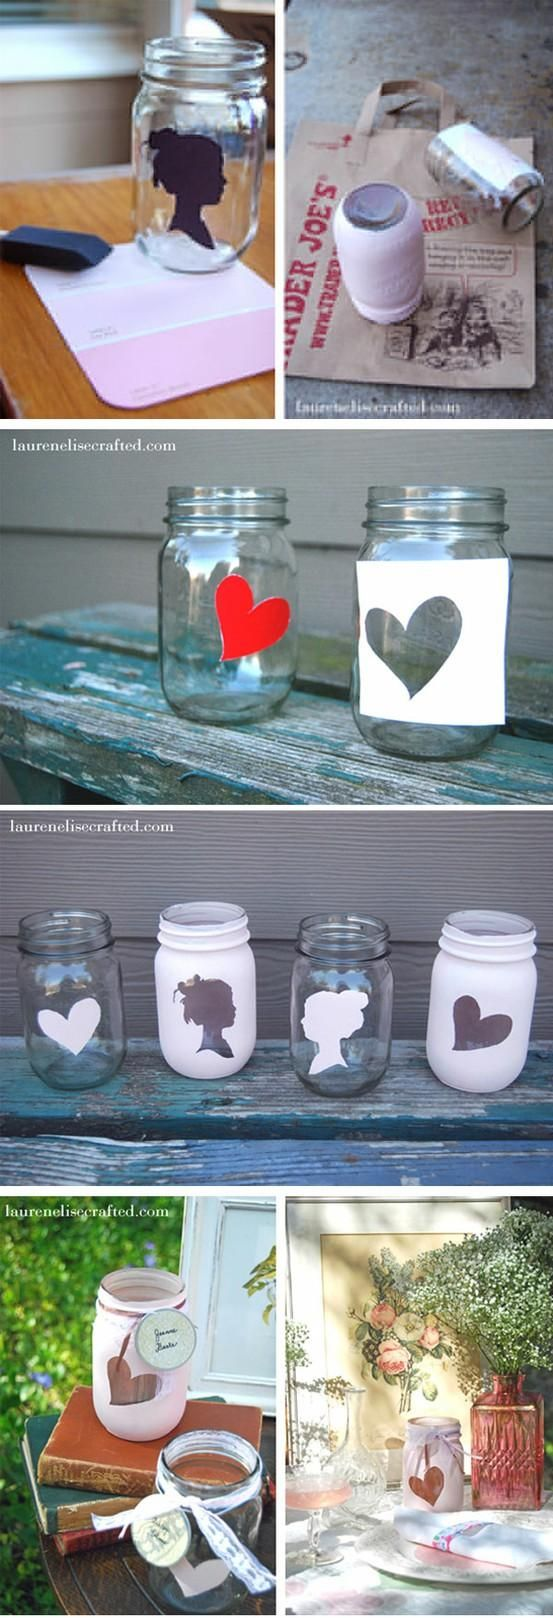 I would totally want to put candles/colored LED lights.